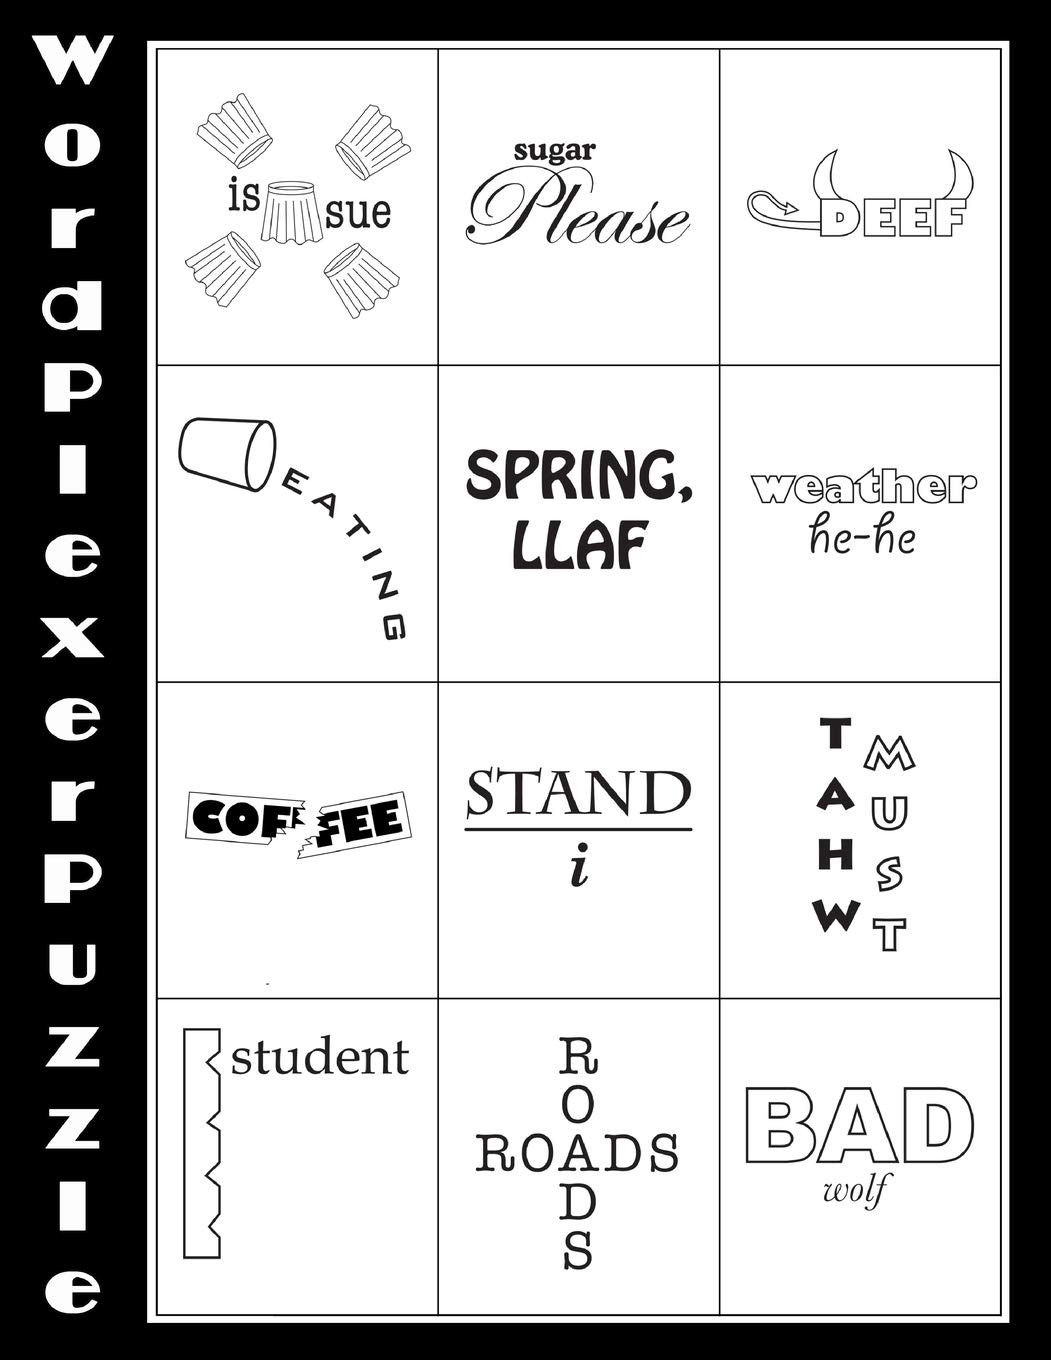 Pictogram Puzzles Printable top Hard Rebus Puzzles with Answers Printable